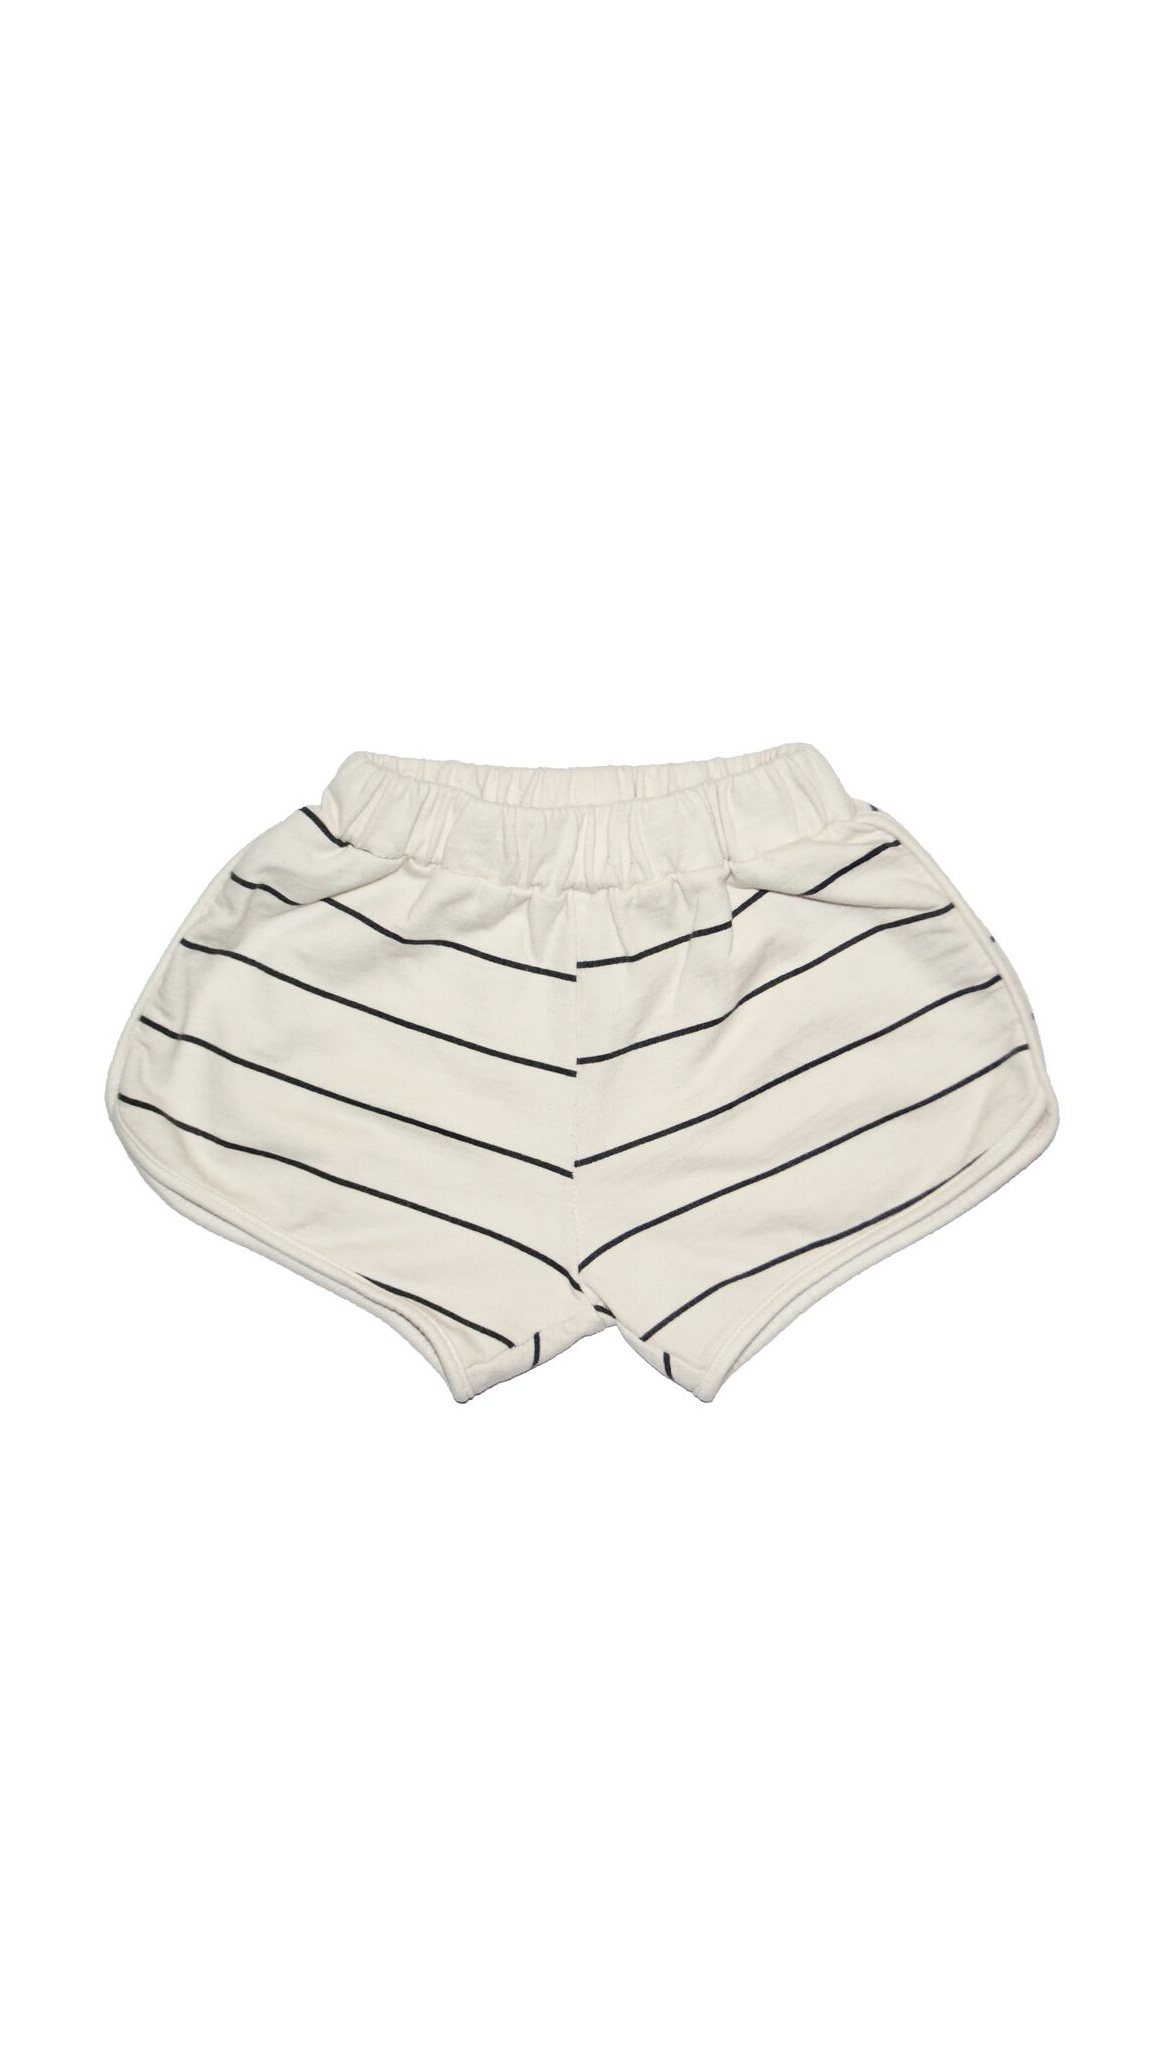 Little Urban Apparel, Shorts - Island Stripe